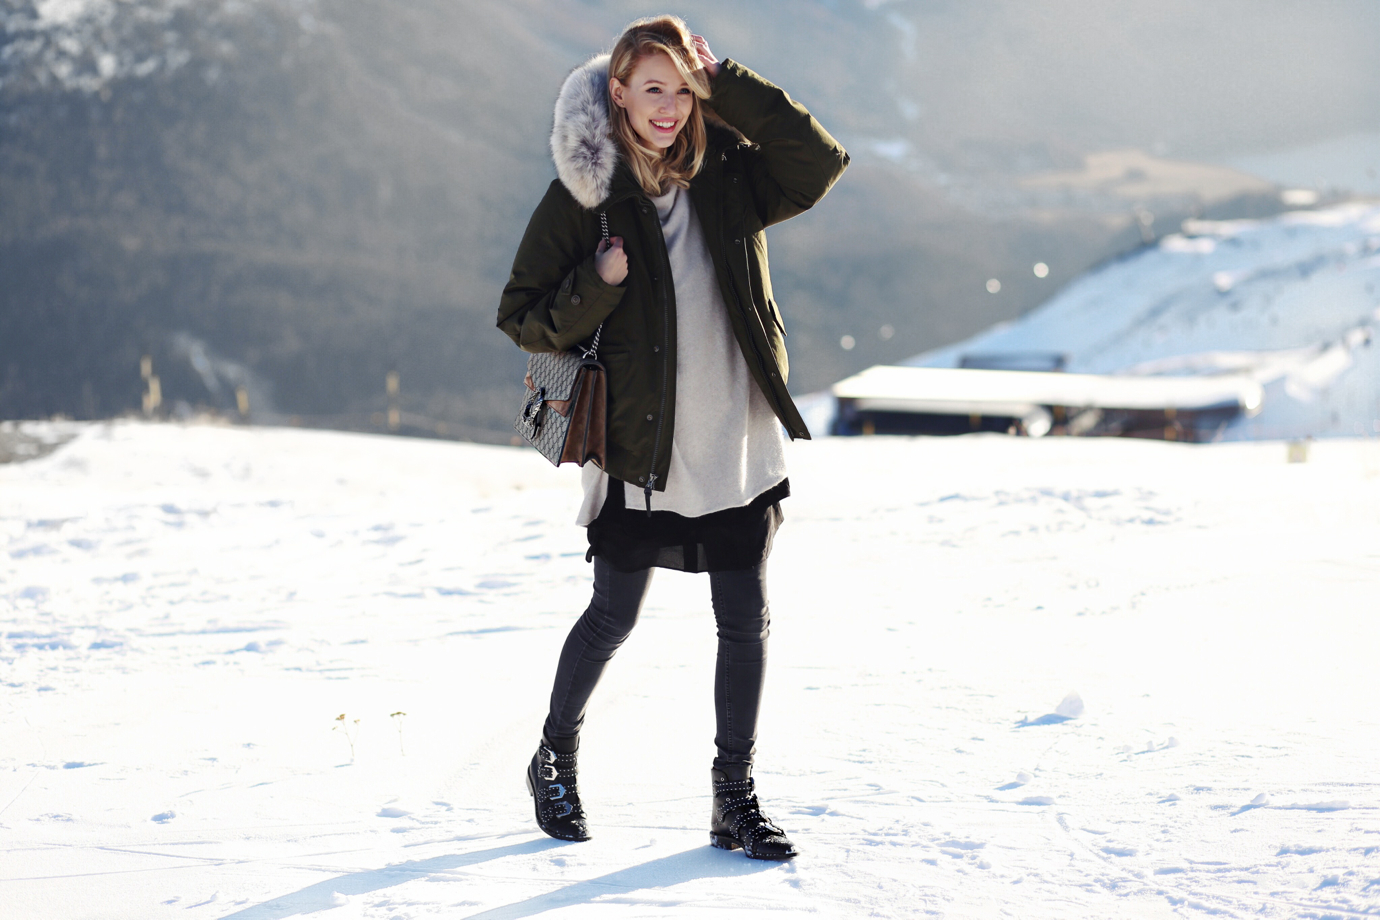 givenchy_boots_woolrich_parka_gucci_dionysus_ohhcouture3